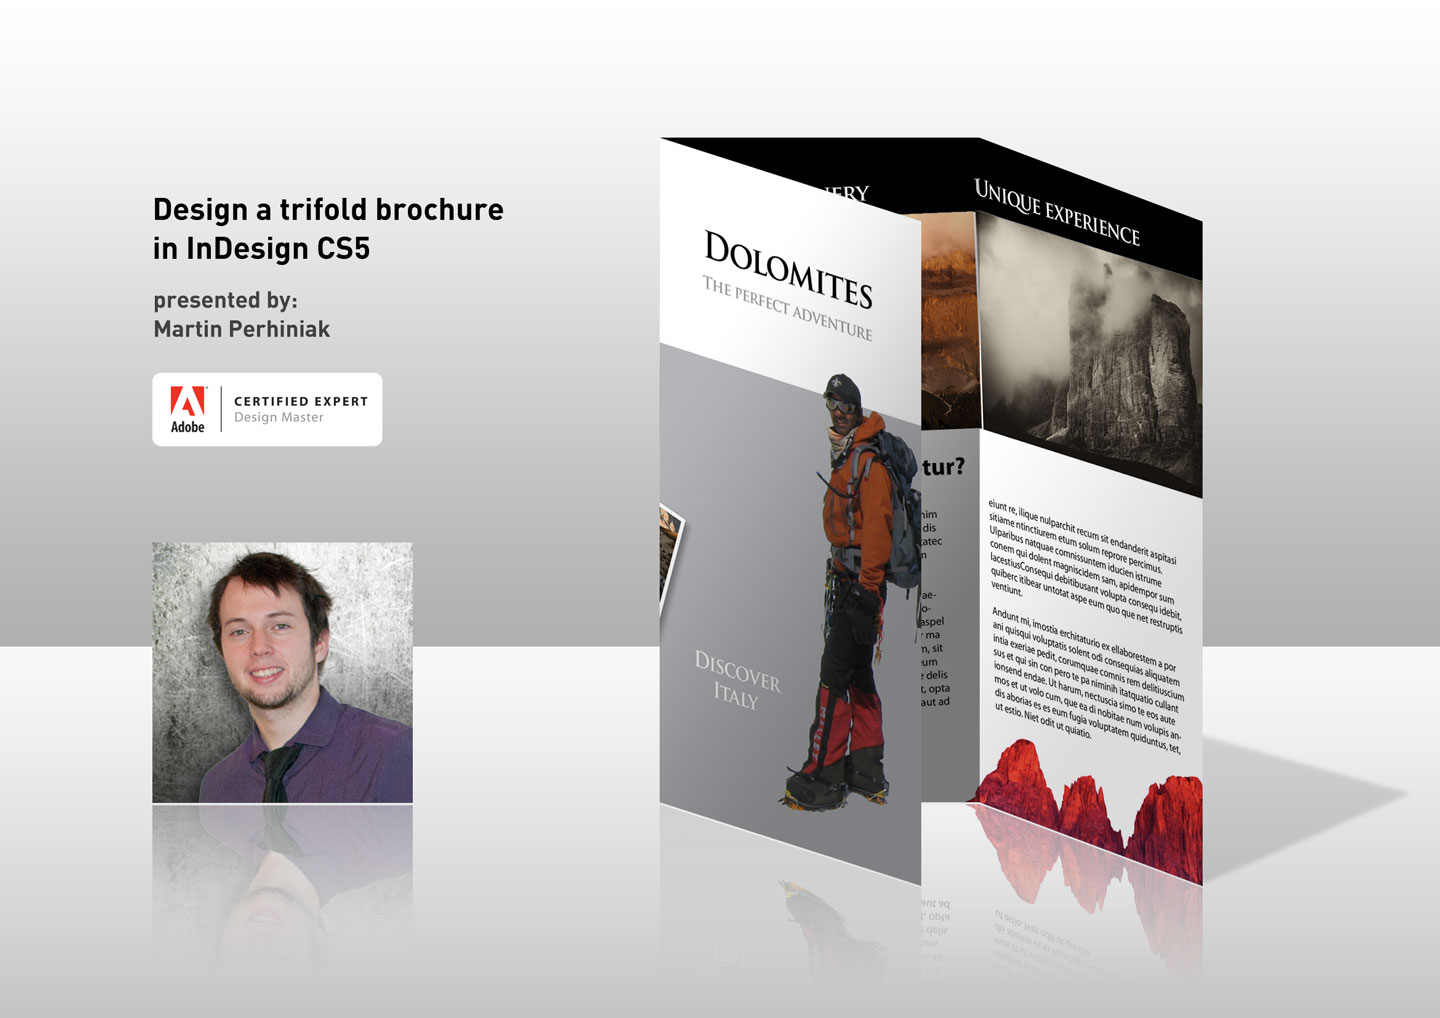 brochure templates for photoshop cs5 - designing a trifold brochure in indesign cs5 eseminar